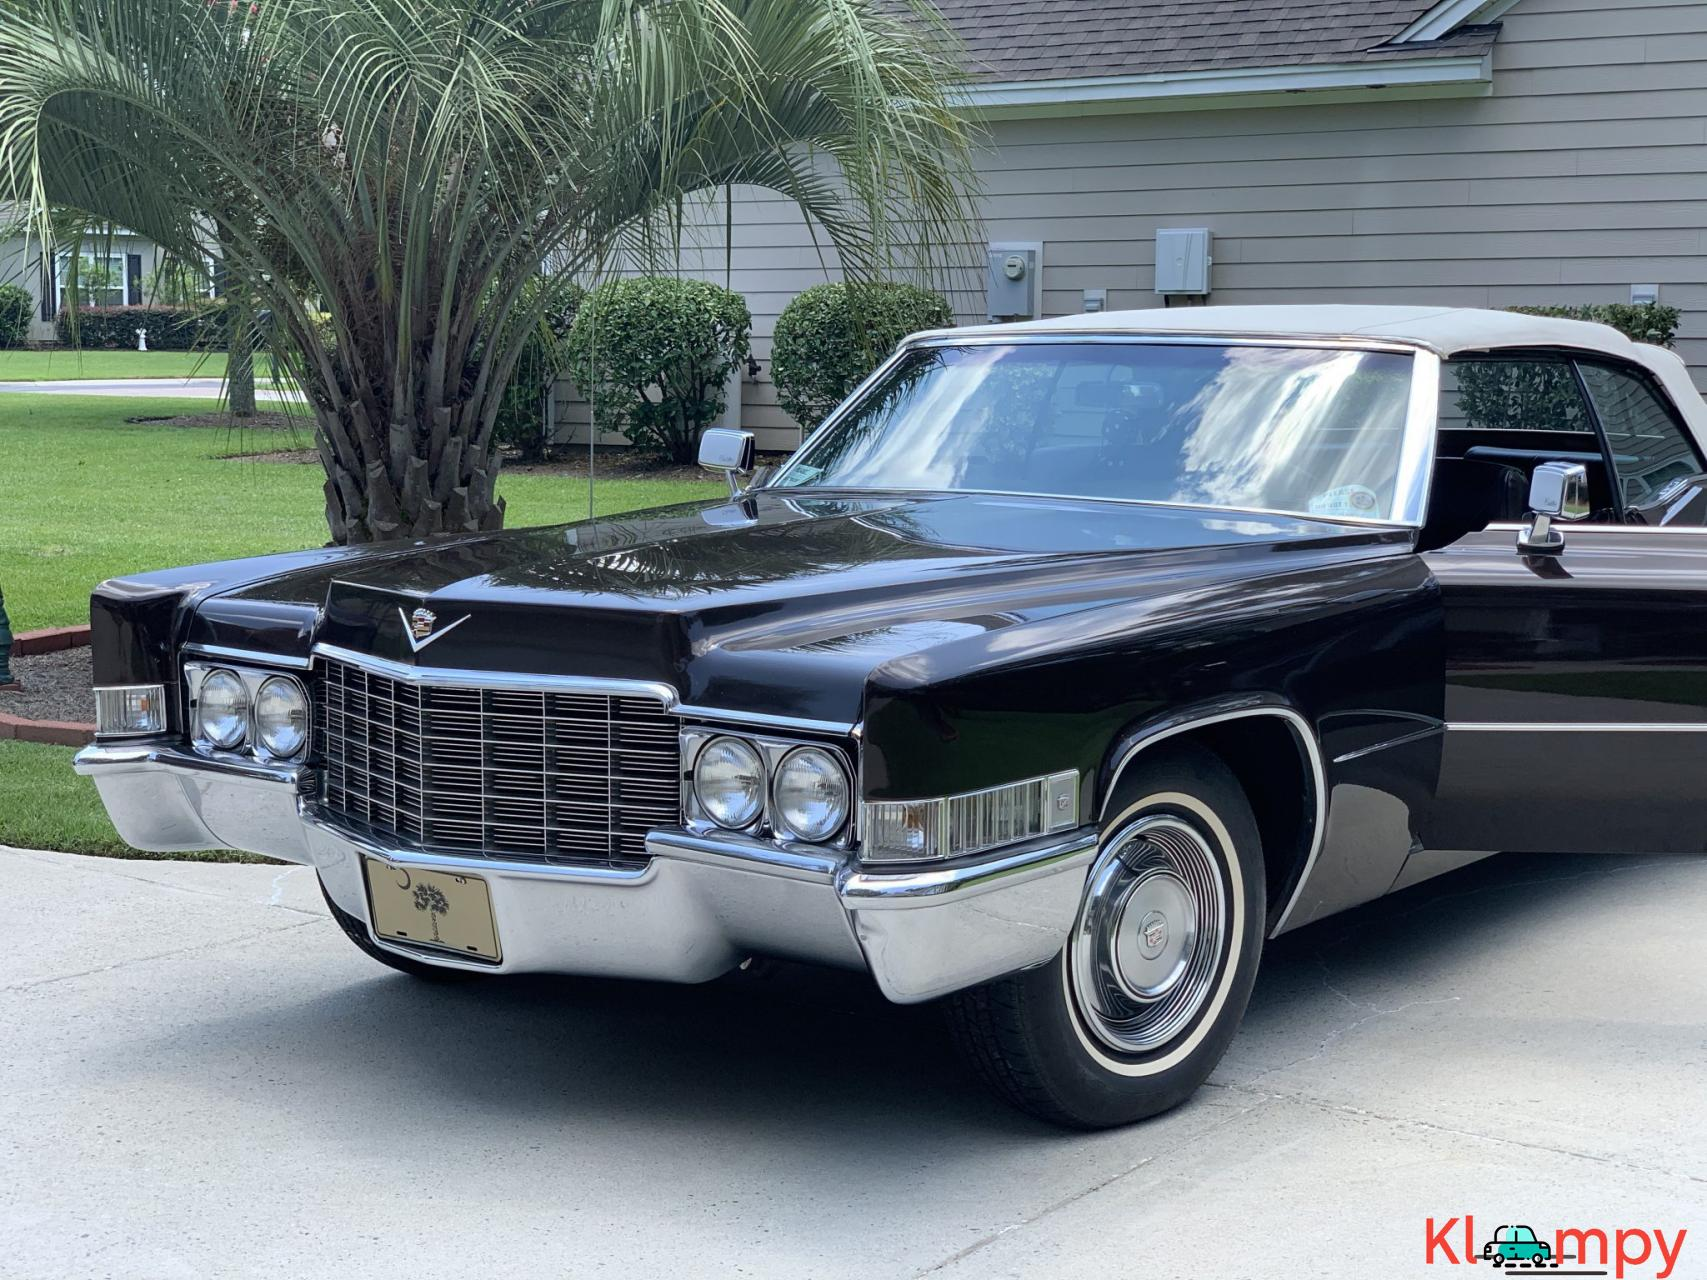 1969 Cadillac DeVille Convertible 472 3-Speed - 10/22